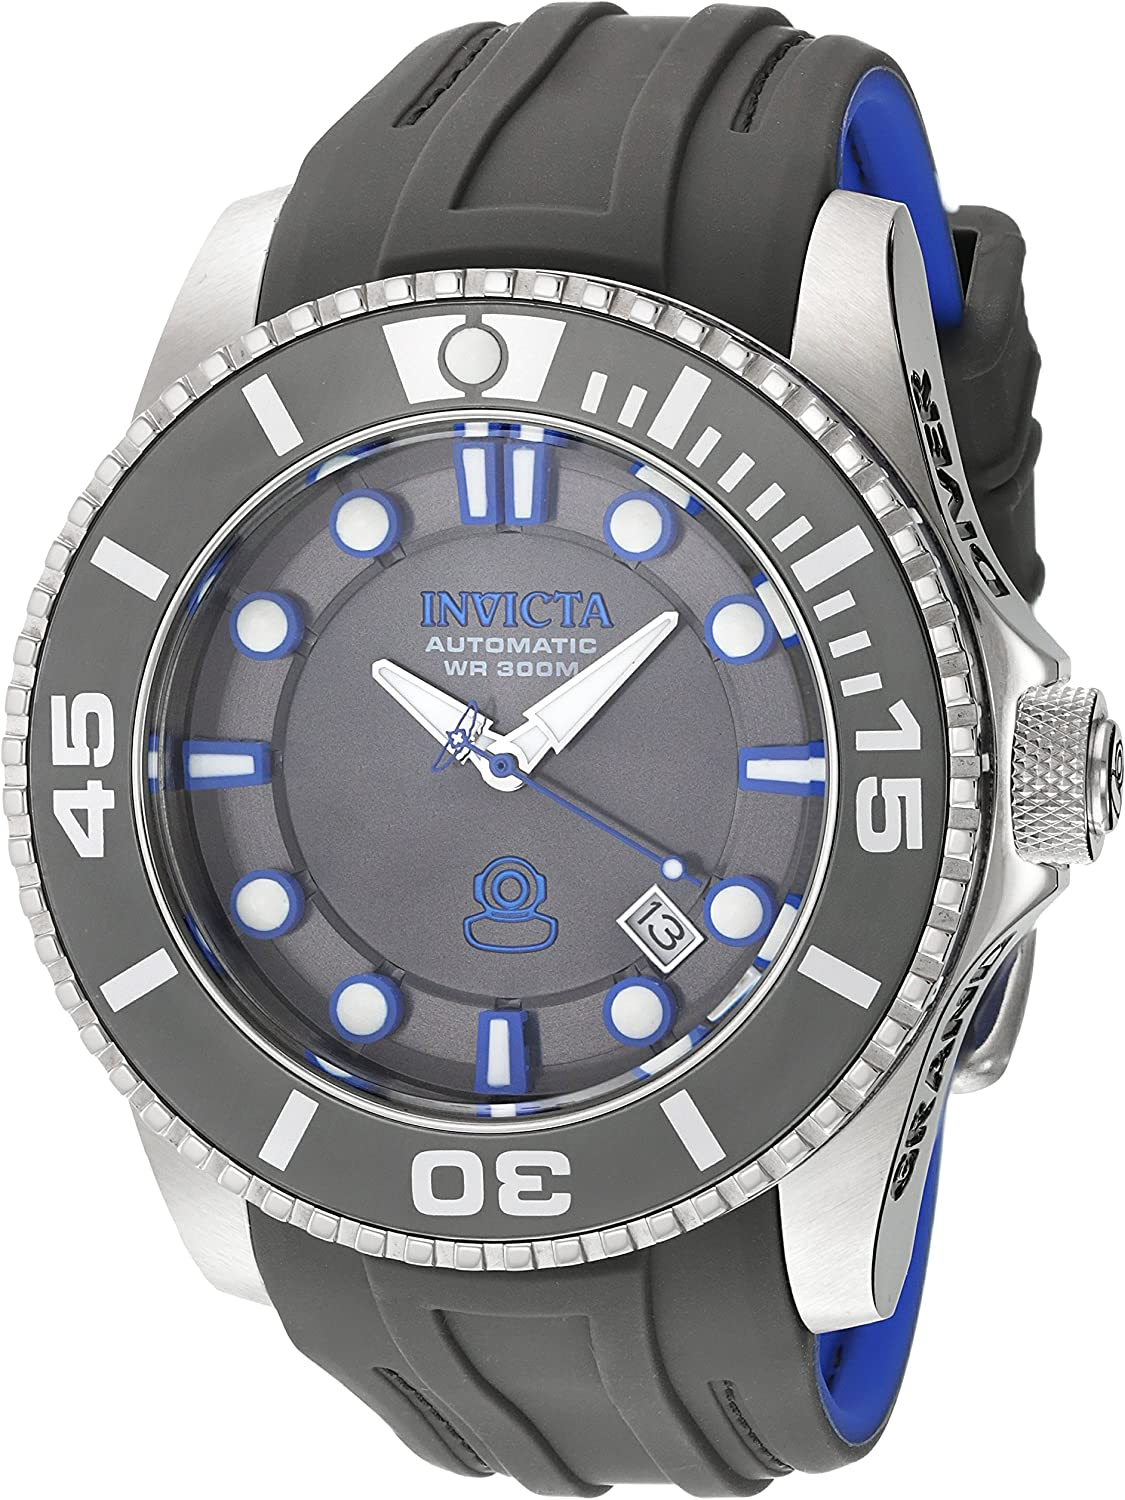 Invicta Men s Pro Diver Stainless Steel Automatic-self-Wind Diving Watch with Silicone Strap, Grey, 26 Model 20200